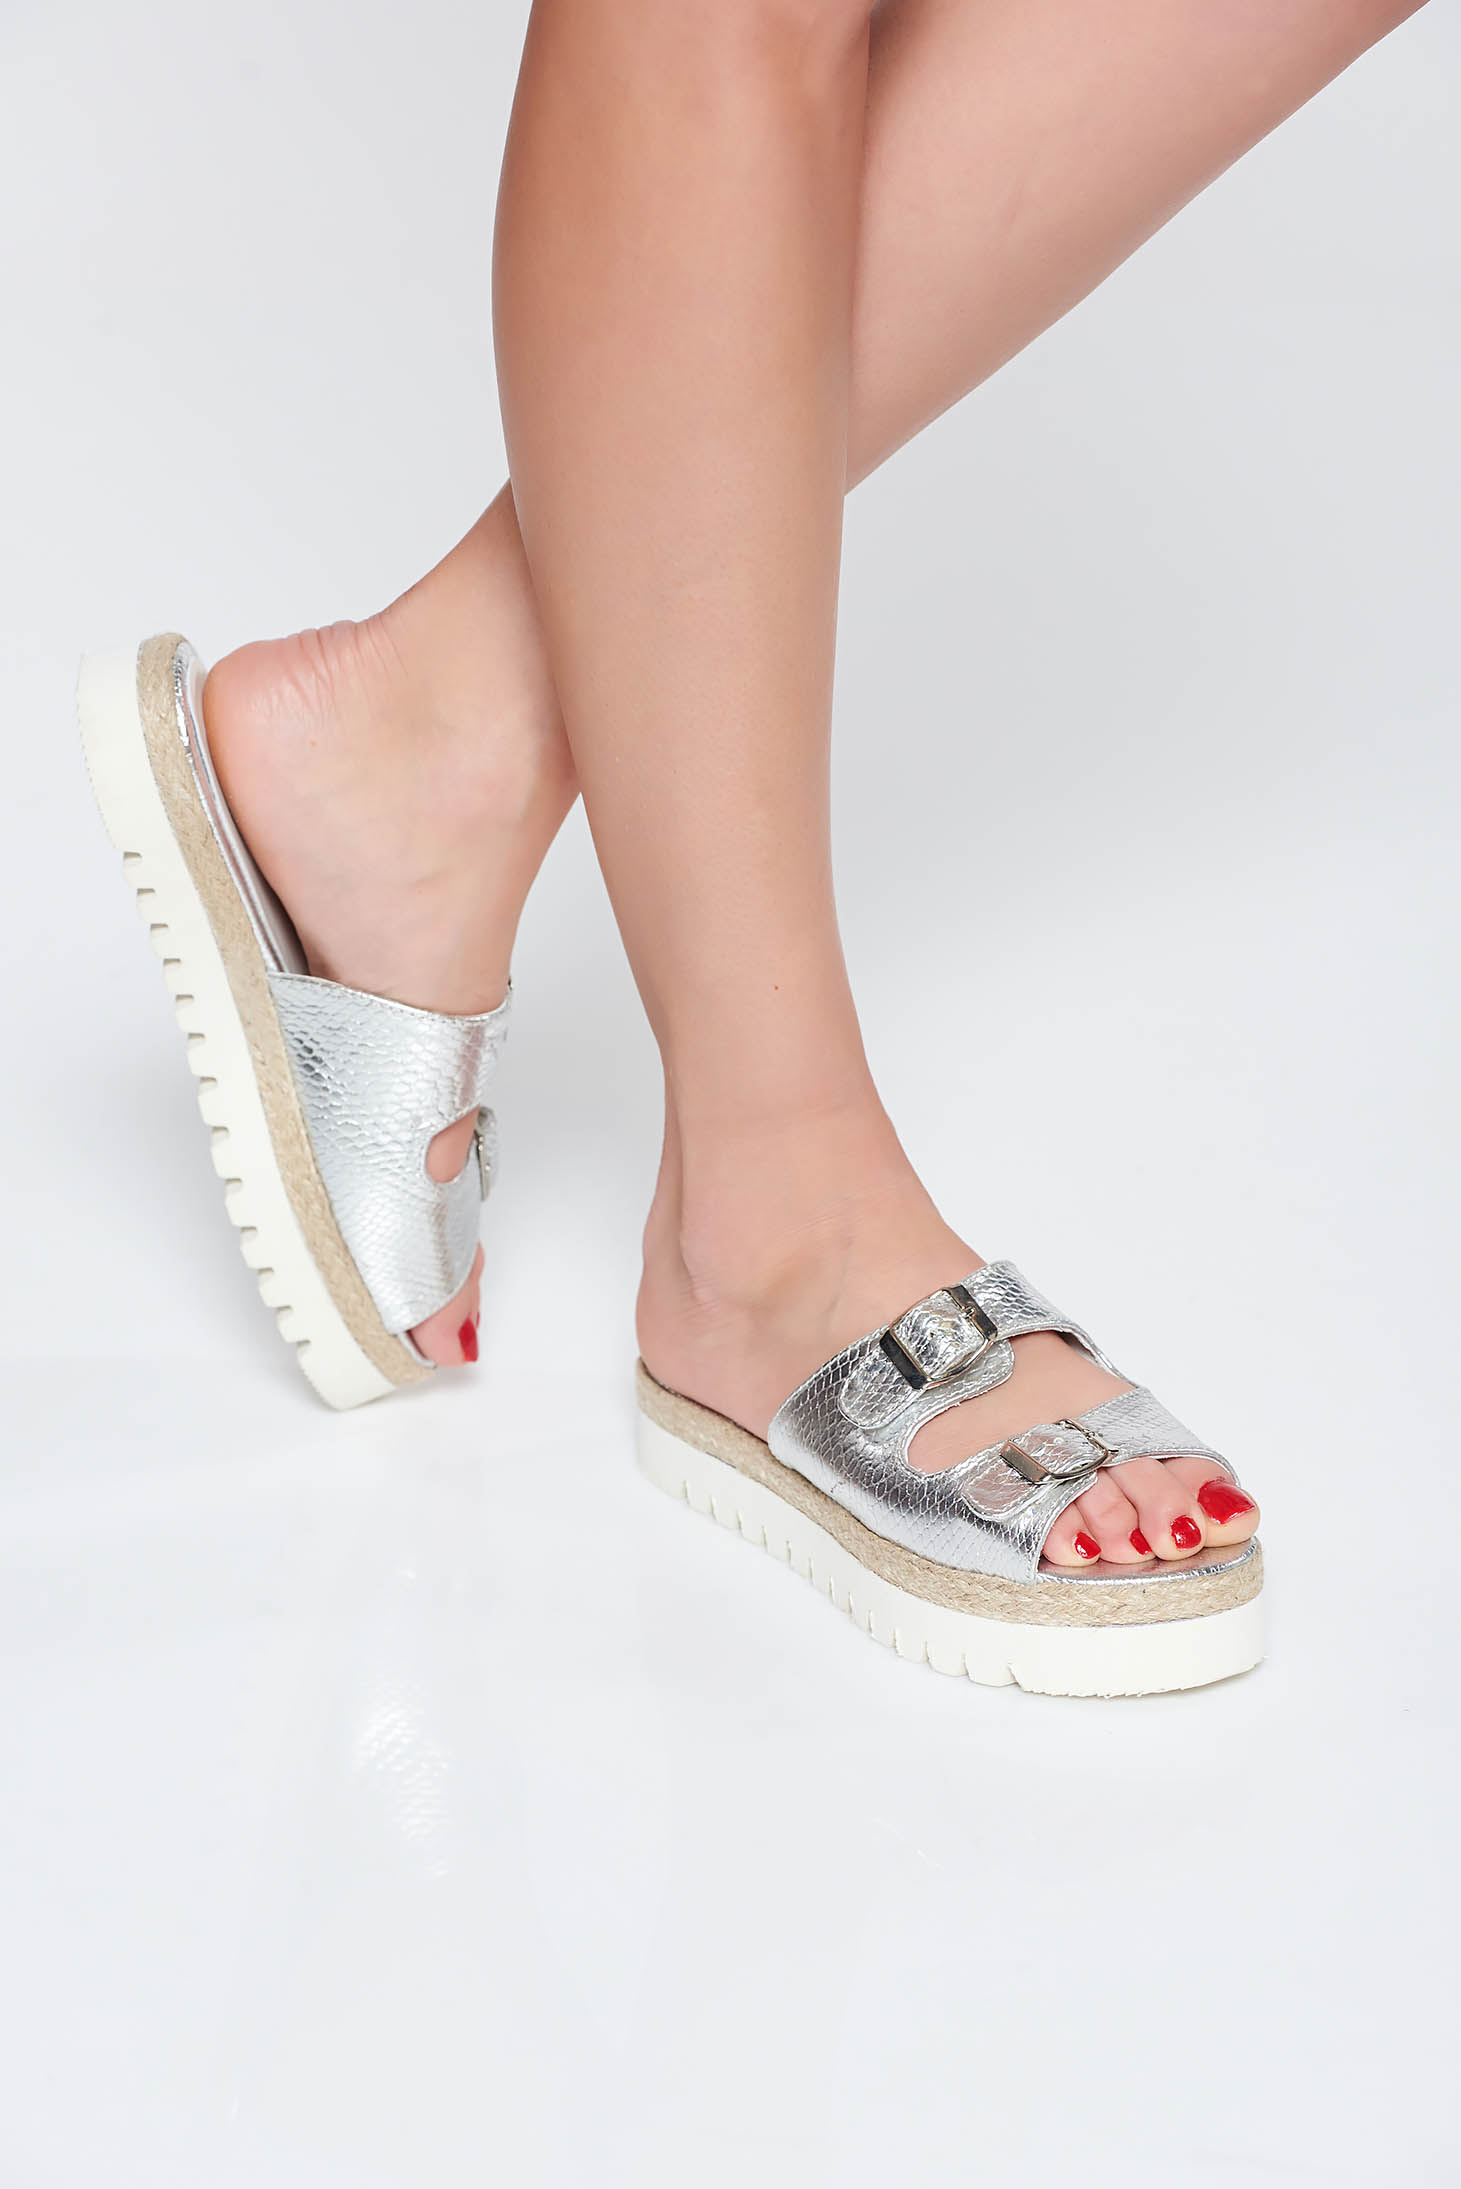 StarShinerS silver casual slippers natural leather low heel with buckles accessories